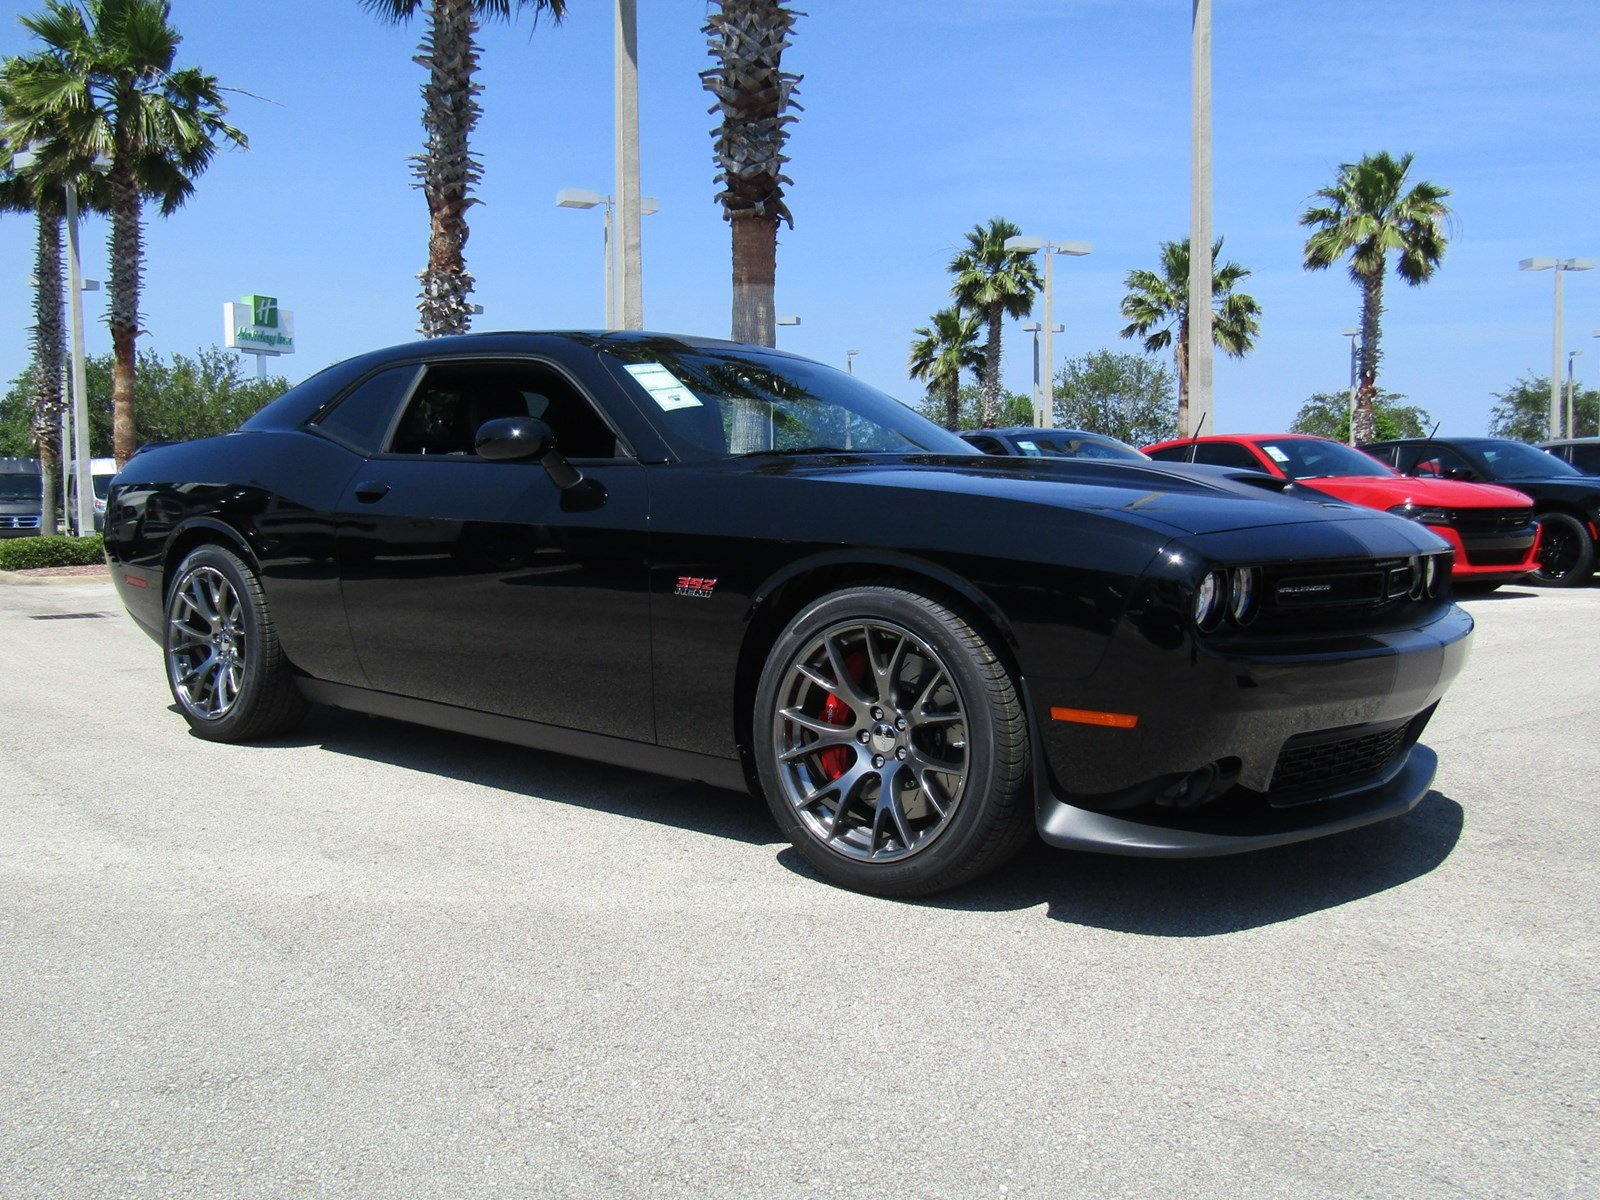 Daytona Charger 2017 Black >> New 2017 Dodge Challenger SRT 392 Coupe in Daytona Beach # ...